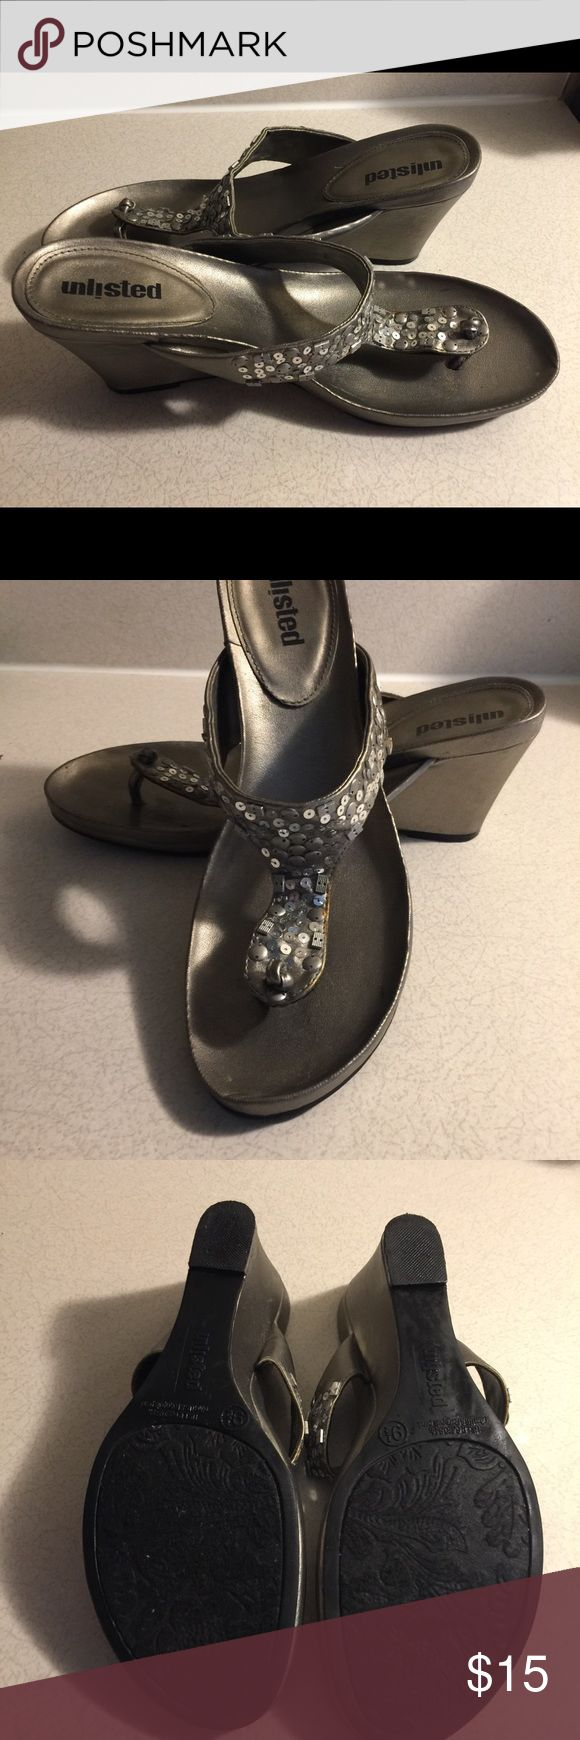 Unlisted, women's size 9.5 Sequined Wedge Sandals These beautiful sandals are silver and sequins, ready to dress up any outfit. They have a 3 inch wedge heel and look great with jeans, shorts, or a dress/skirt. They are pre-owned but they are in great condition. Unlisted Shoes Sandals